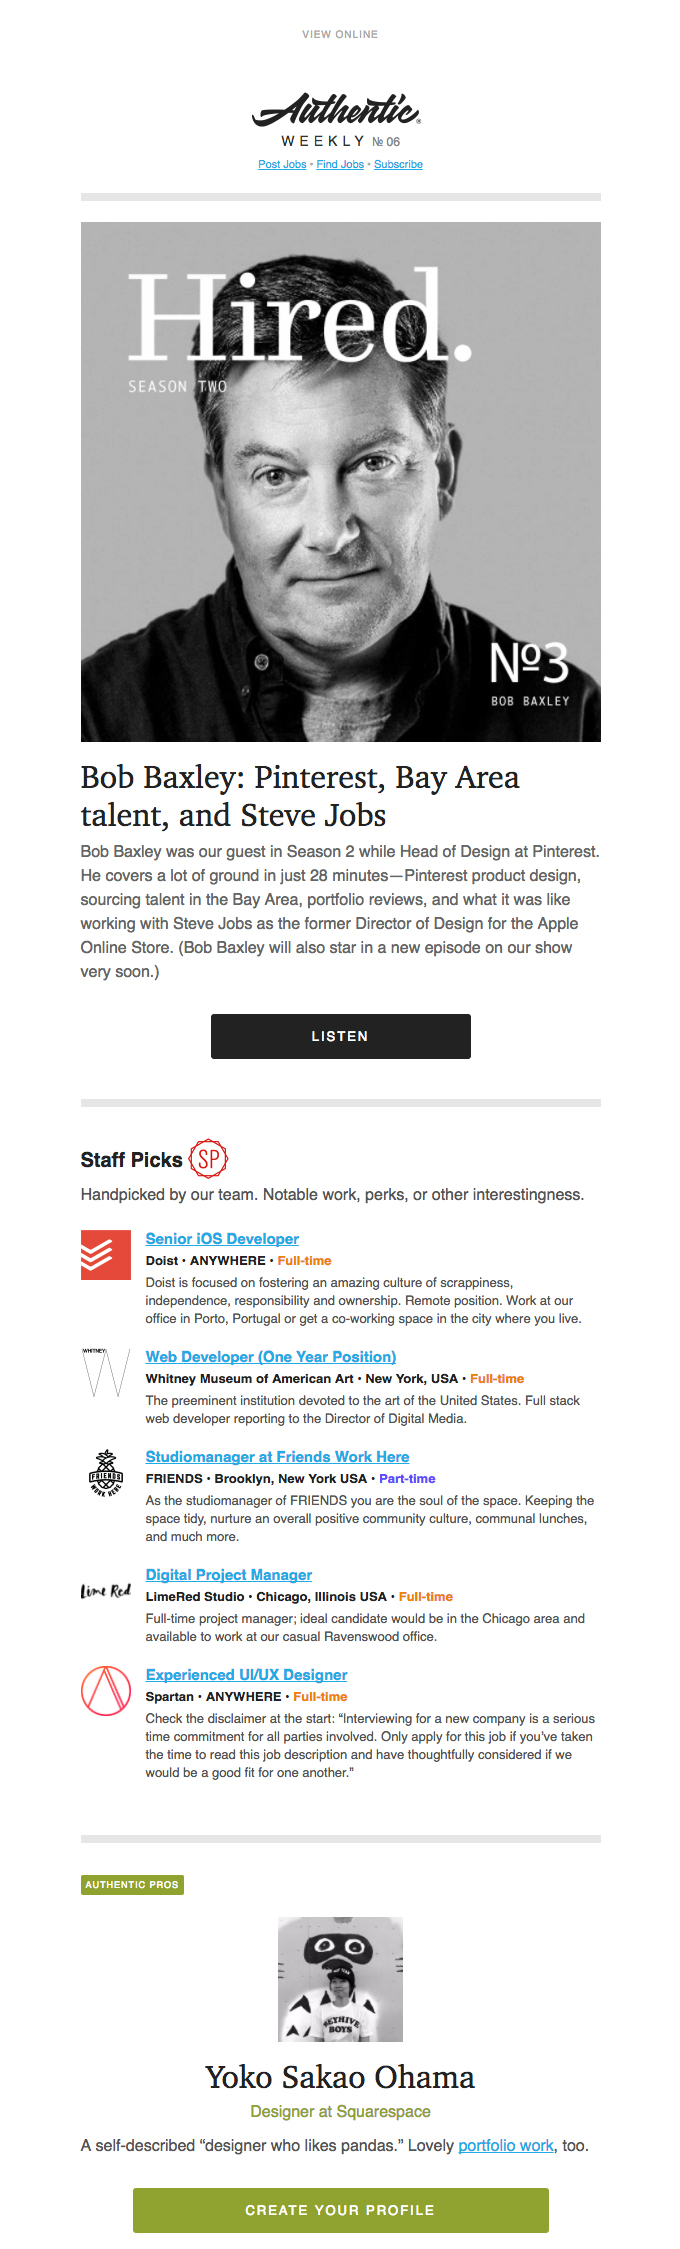 email by Authentic Jobs